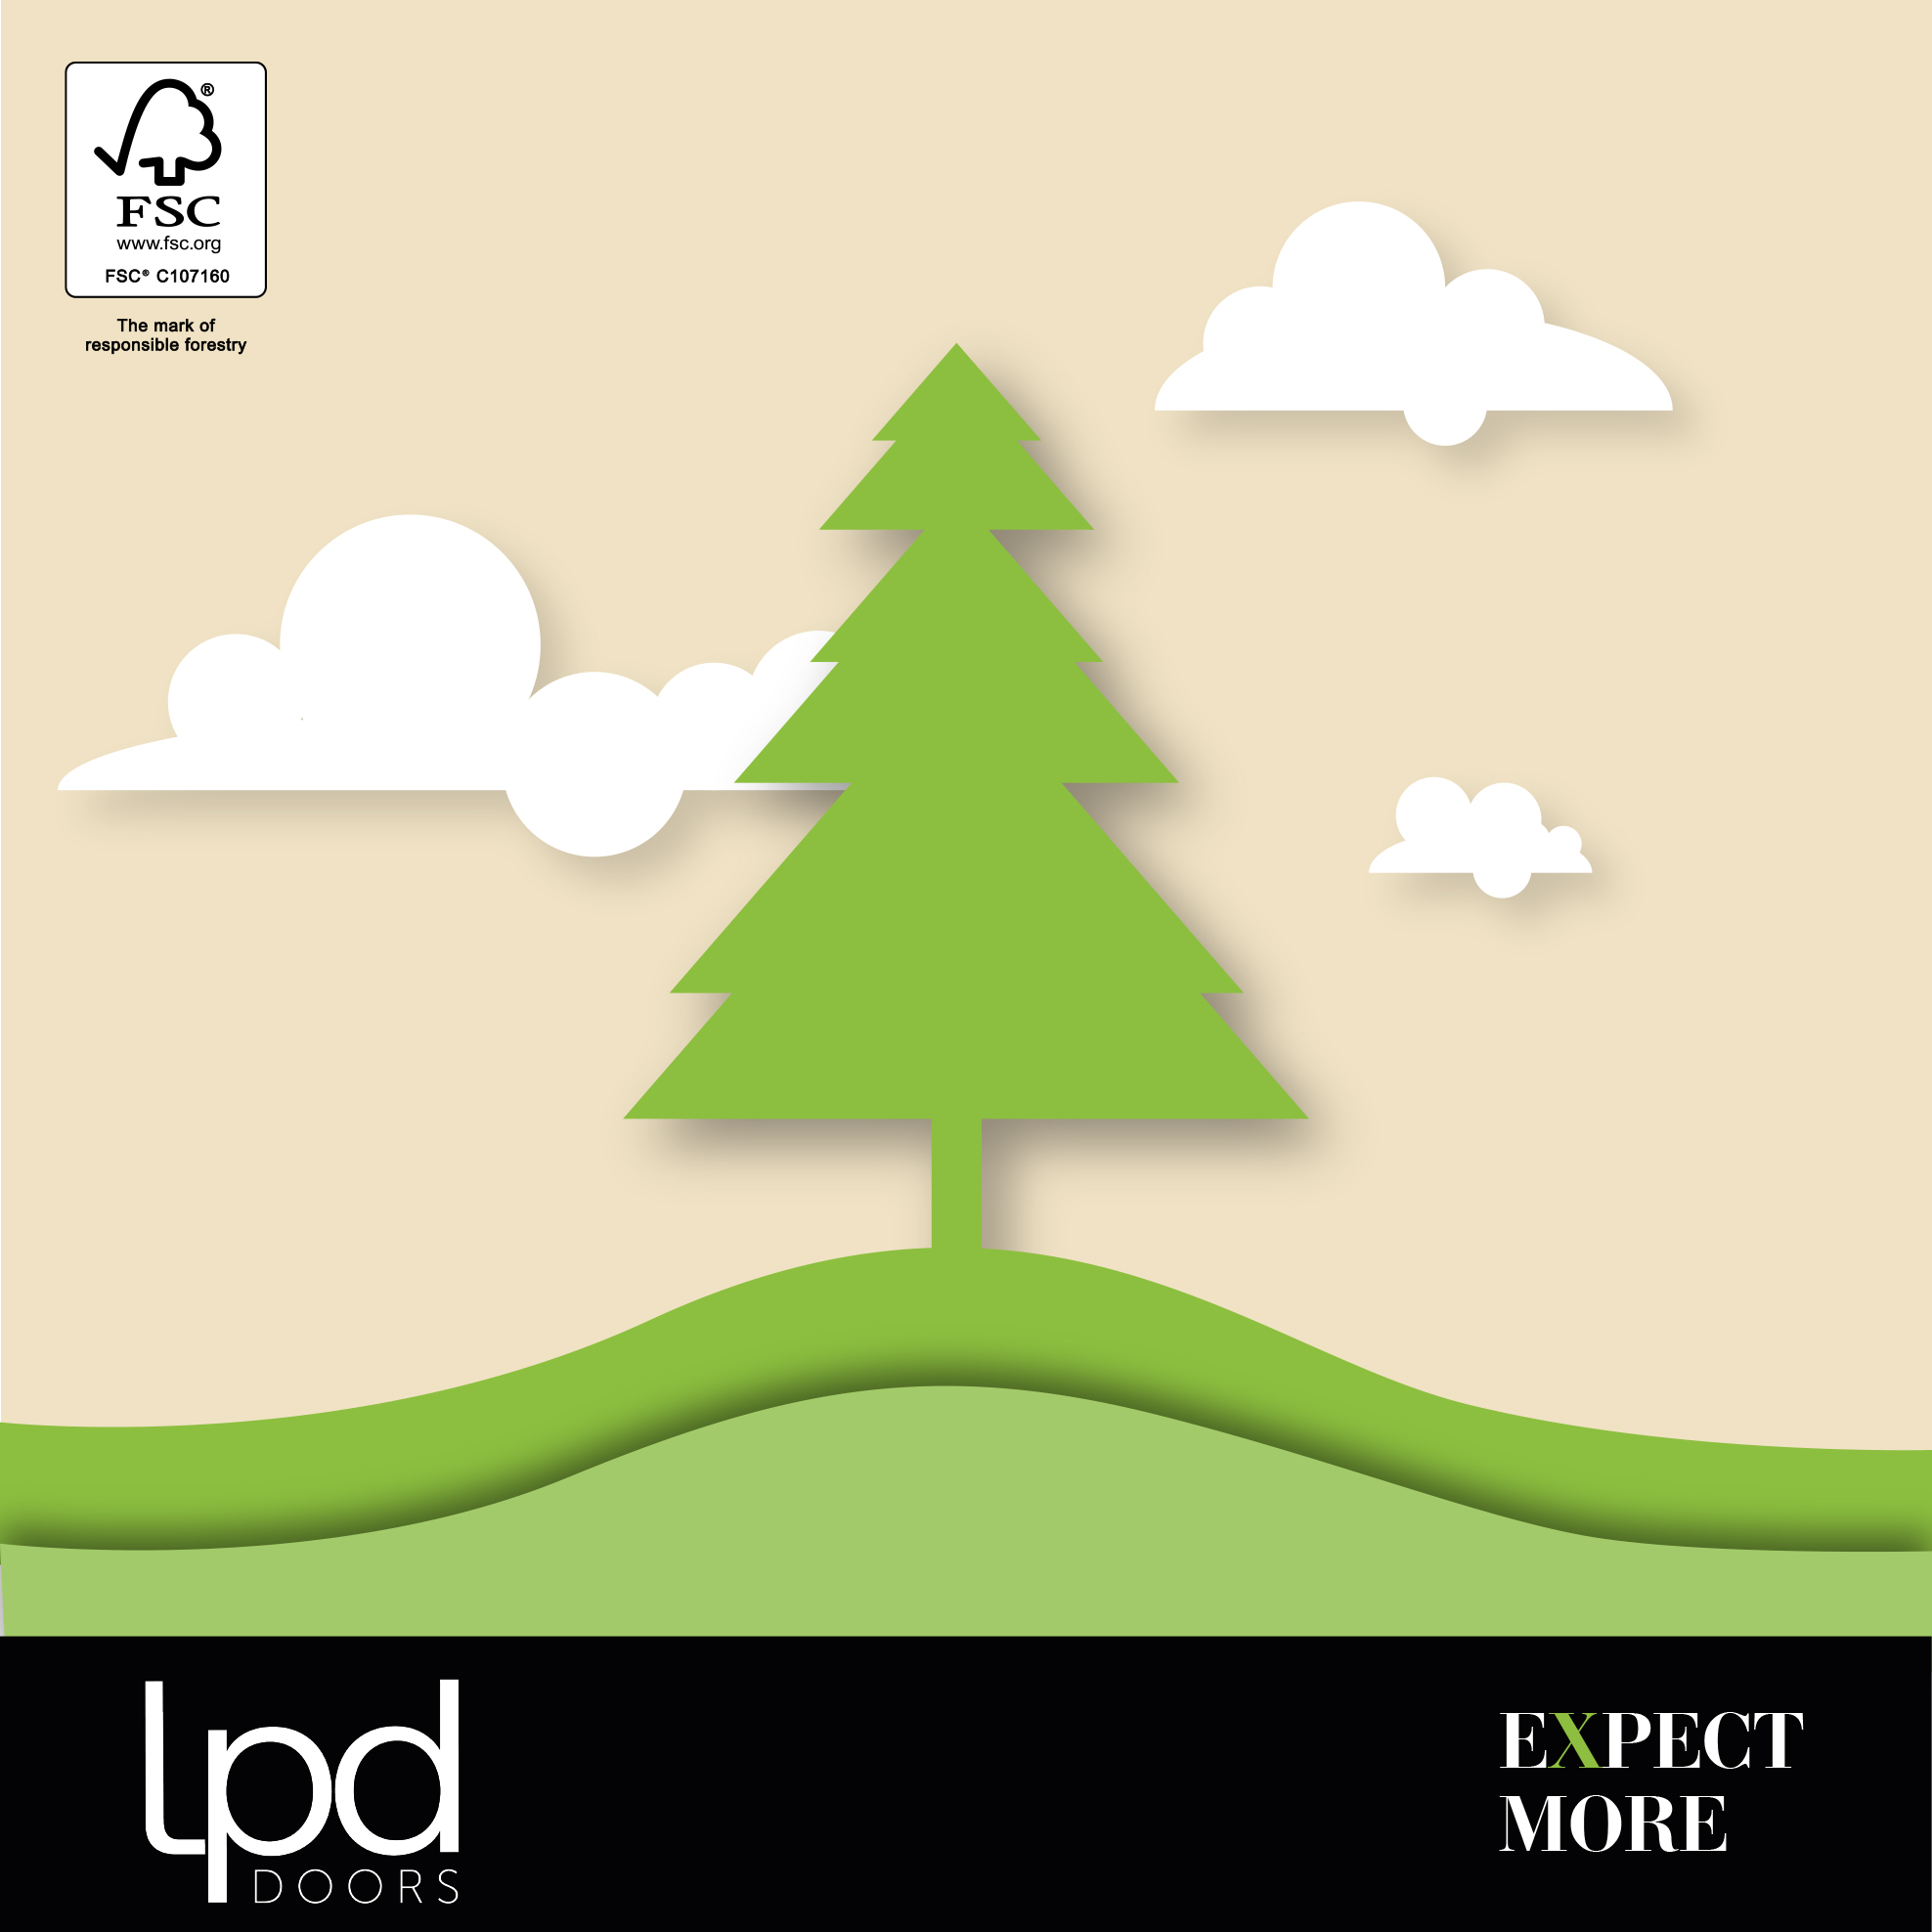 LPD and the environment,FSC